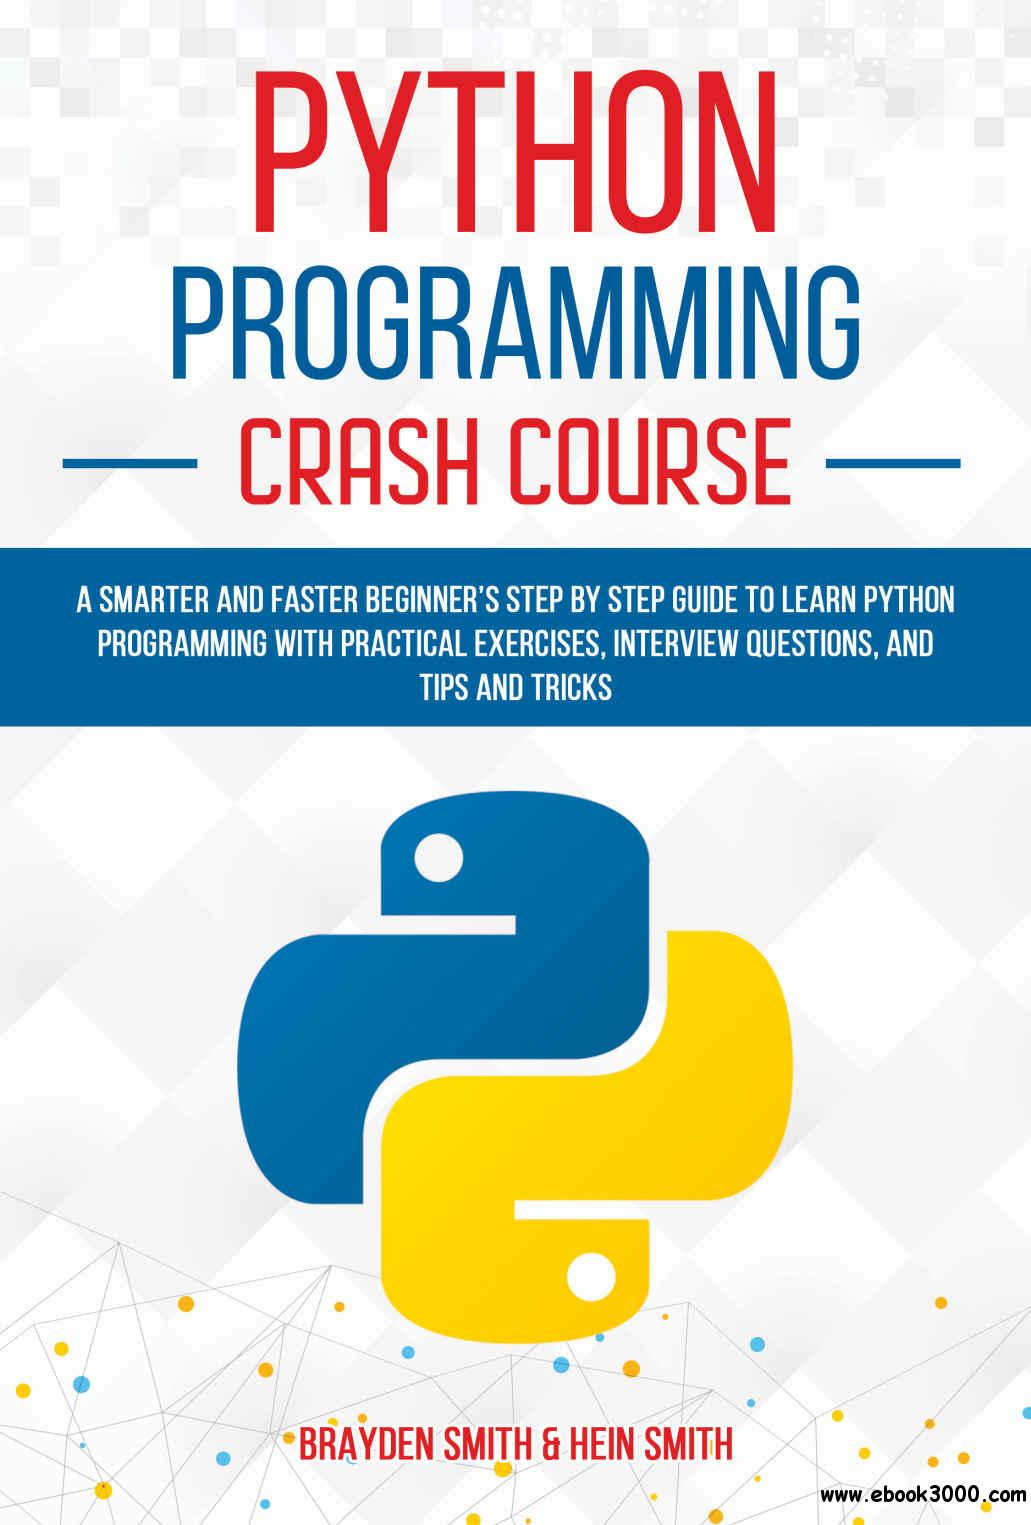 Python Programming Crash Course: A Smarter and Faster Beginner's Step by Step Guide to Learn Python Programming with Practical